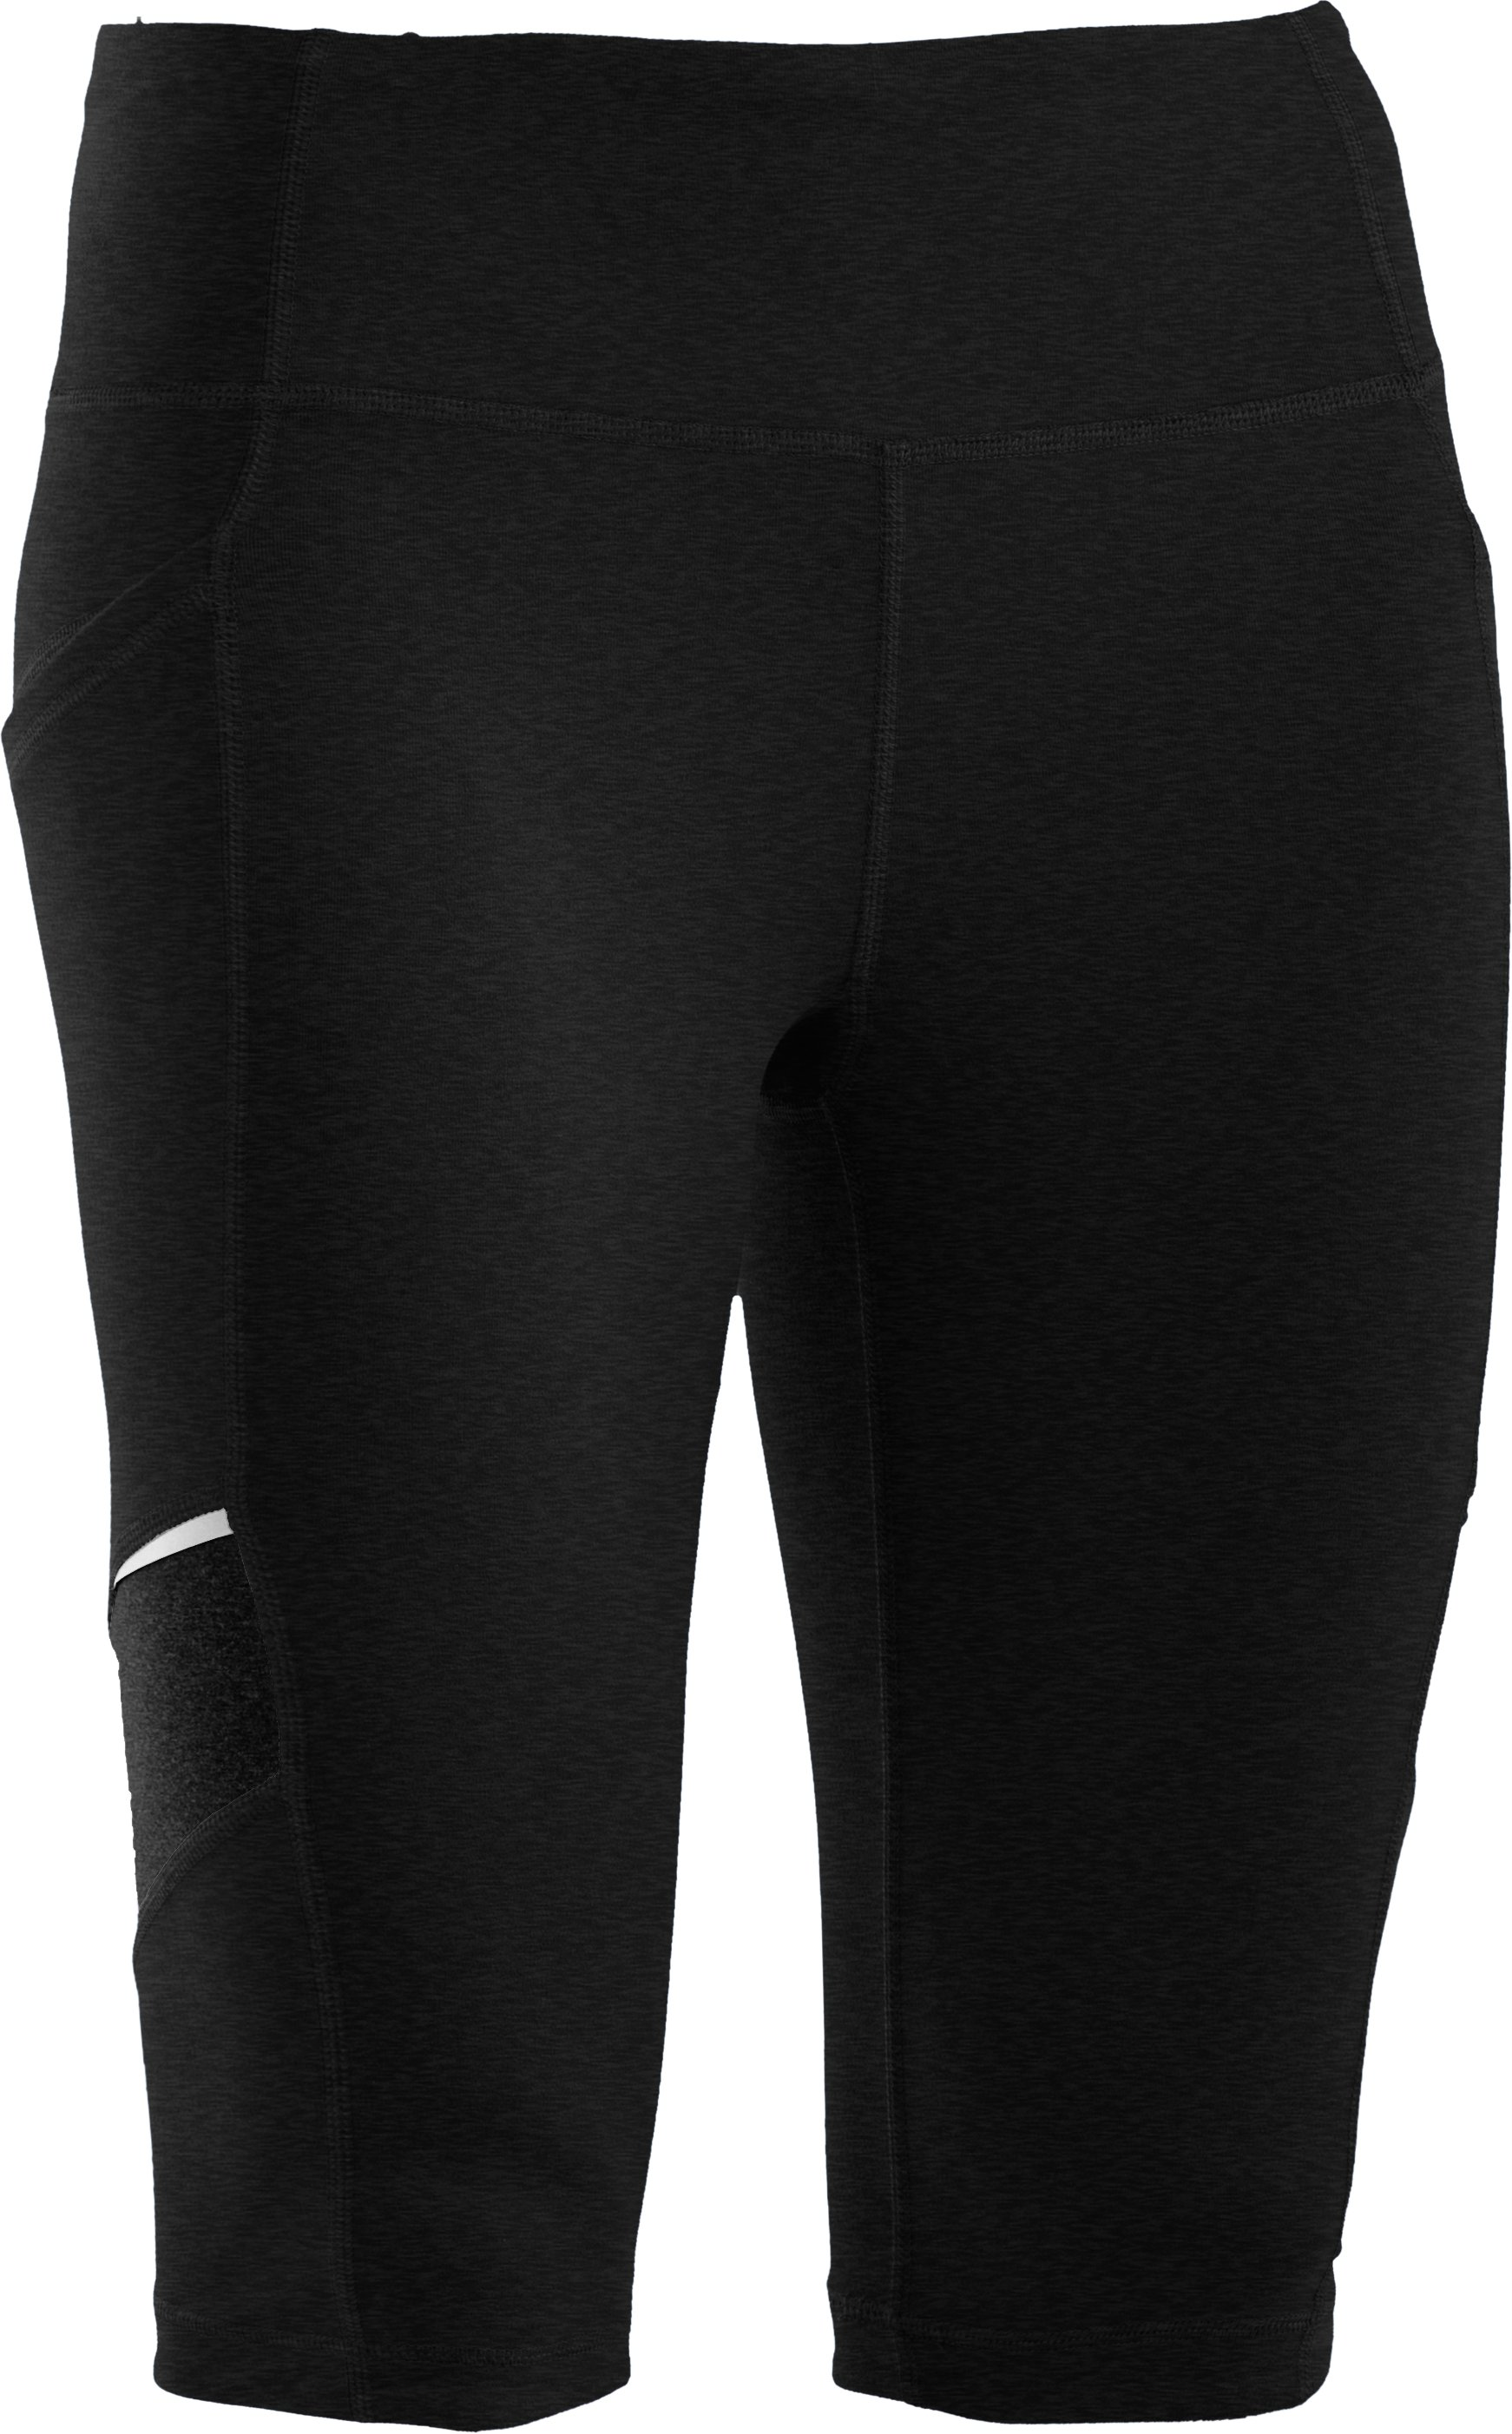 Women's UA StudioLux® Spin Shorts, Asphalt Heather